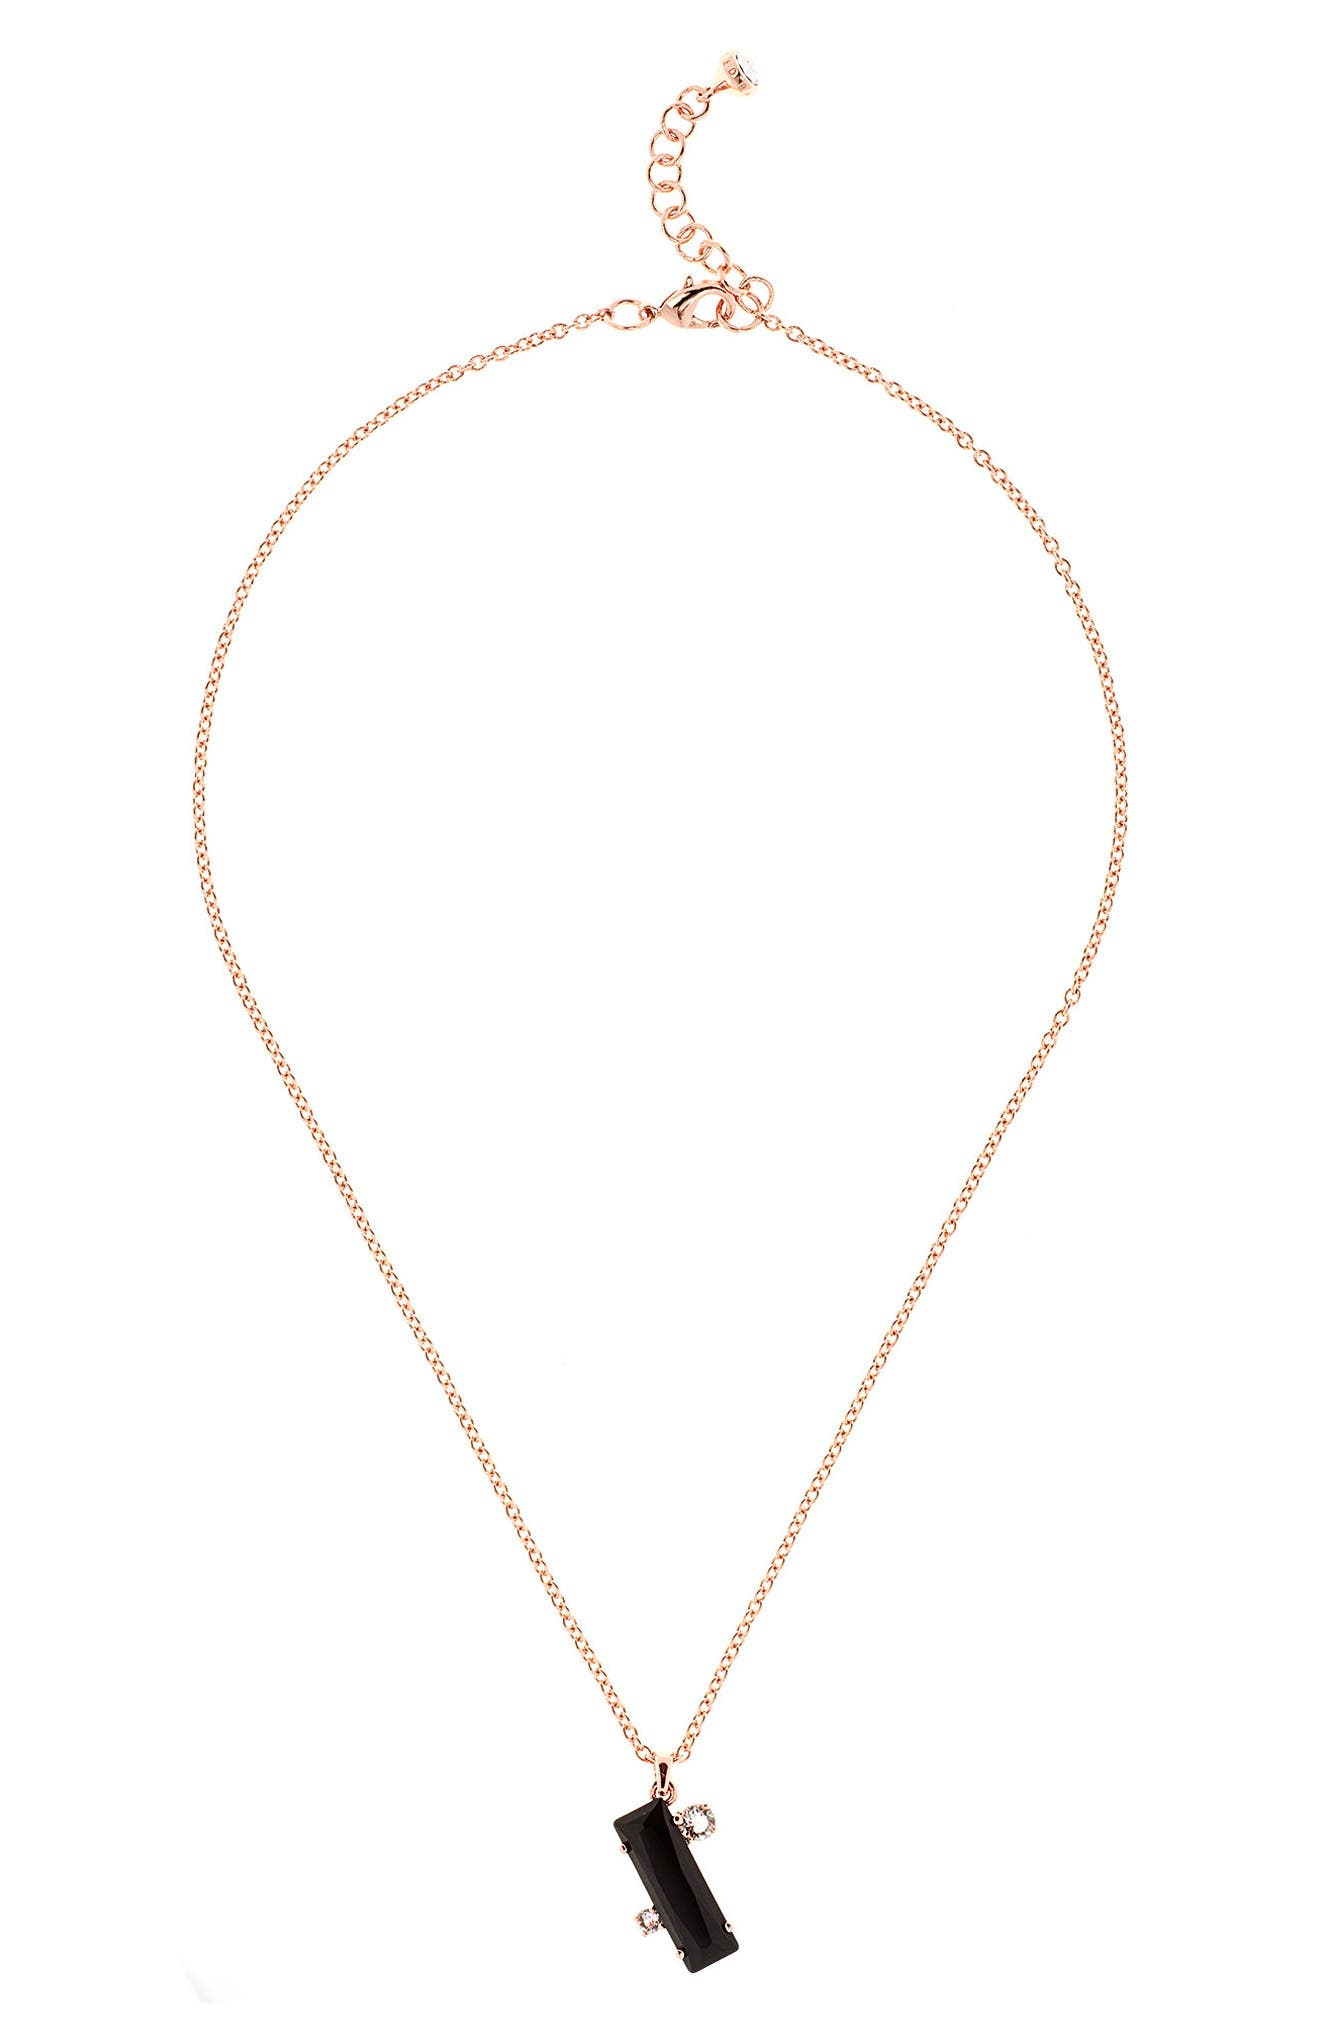 Blaeke Baguette Pendant Necklace,                         Main,                         color, 002